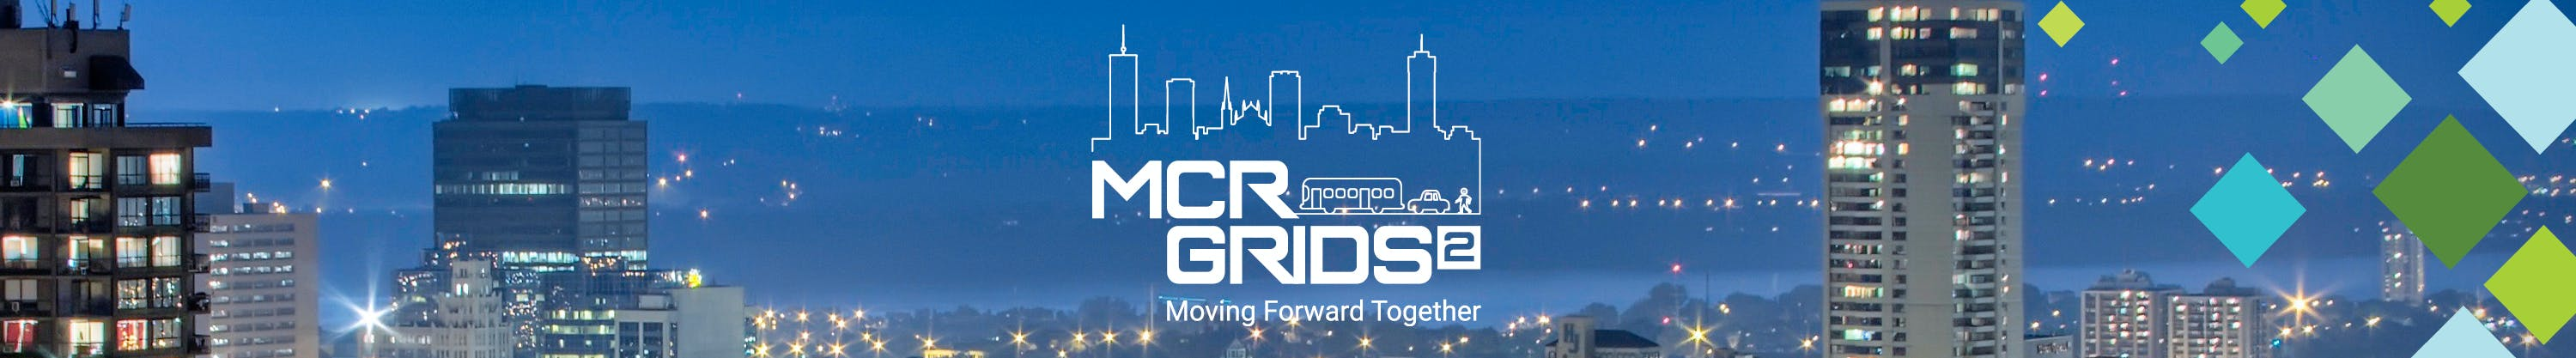 MCR GRIDS 2 Moving Forward Together